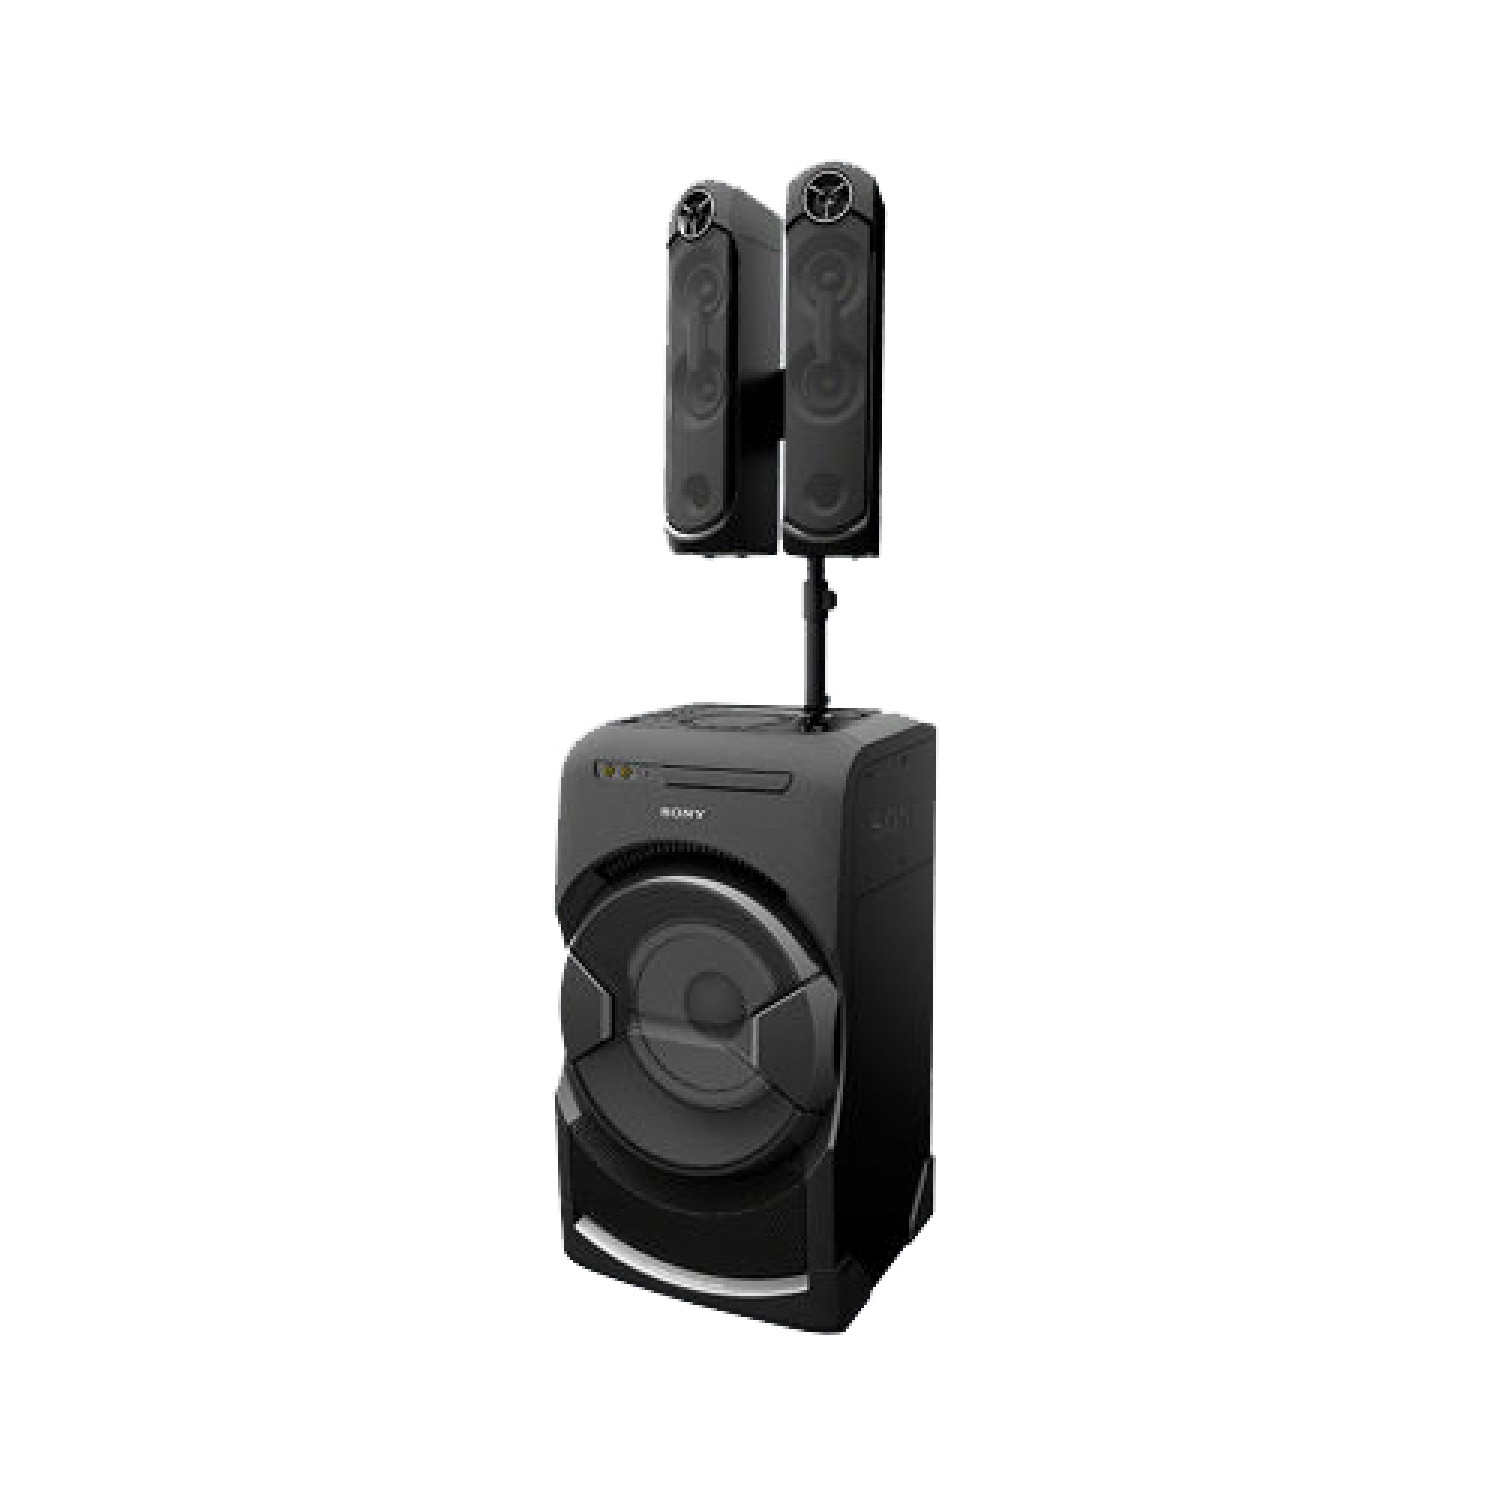 APII 20Study 20Guide 20G 20Respiratory 20Anatomy also R H500 likewise Showthread in addition Musical Fidelity M1 Cdt Cd Transport as well Bose Soundtouch Wireless Link Adapter. on teac sound system